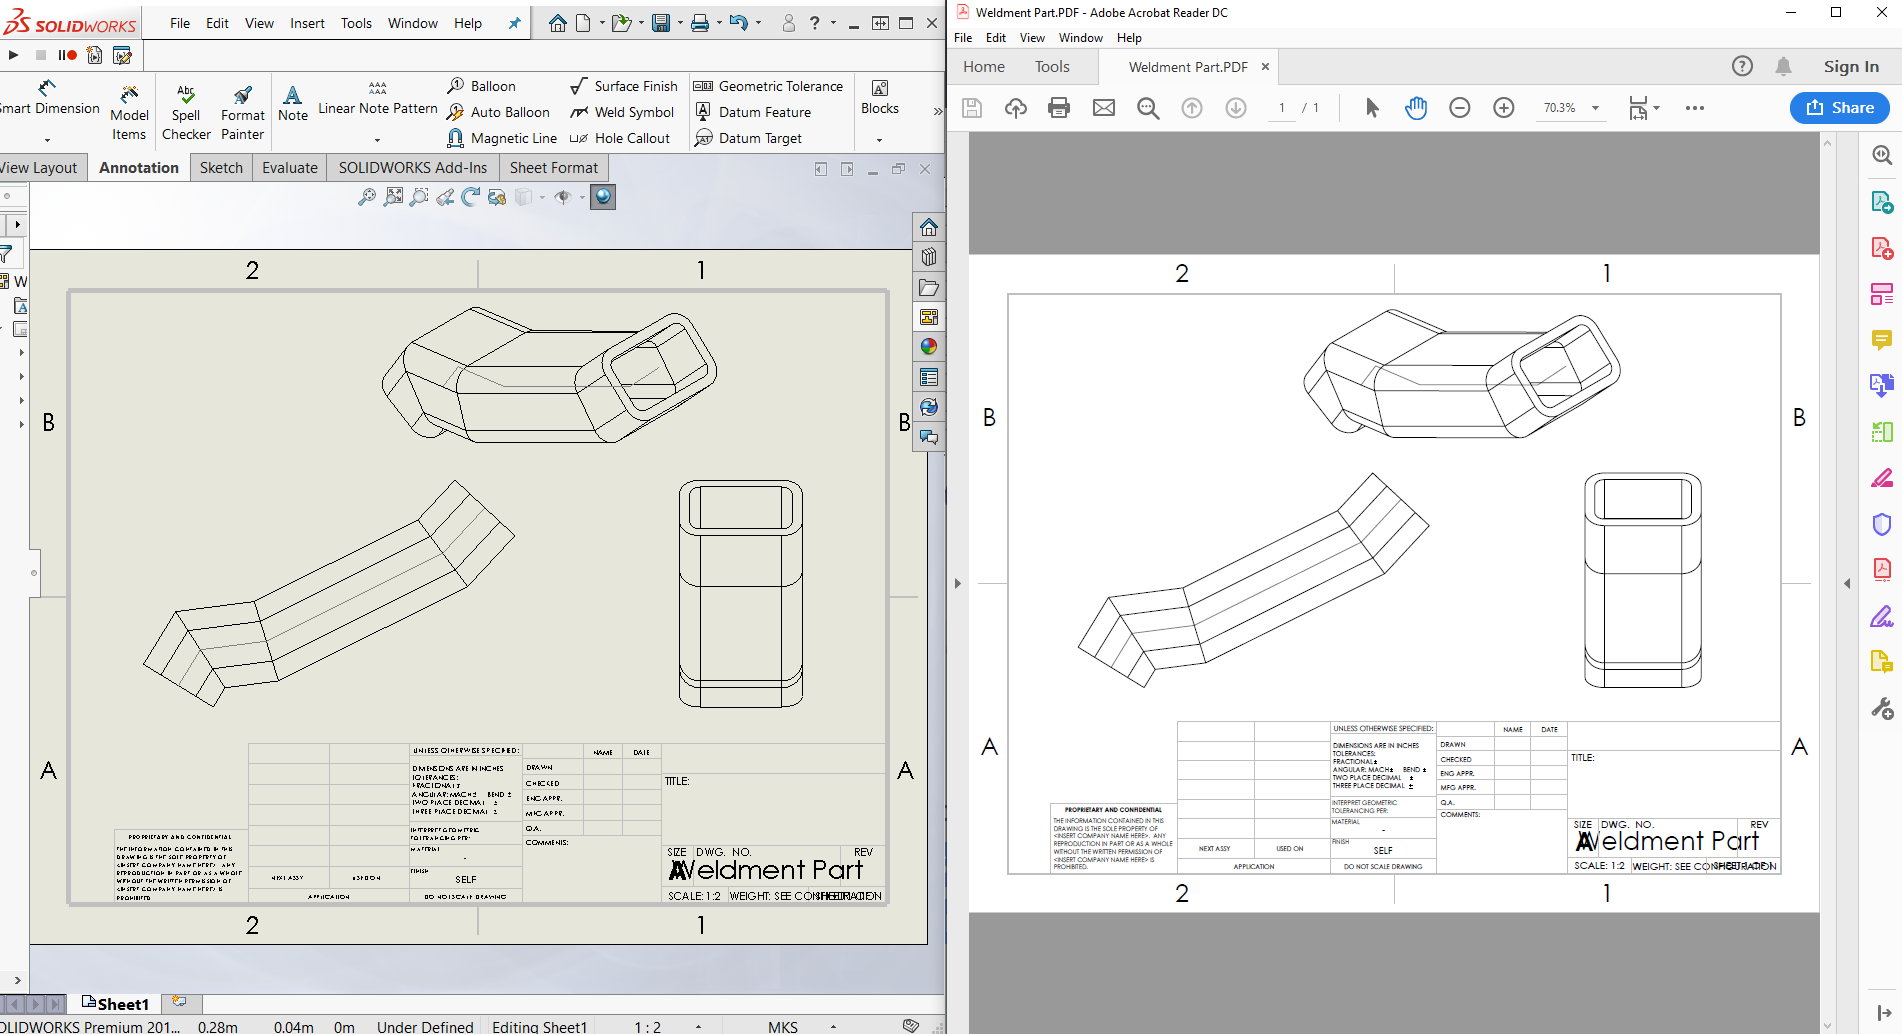 Save SOLIDWORKS Drawing to PDF Macro to automate the process